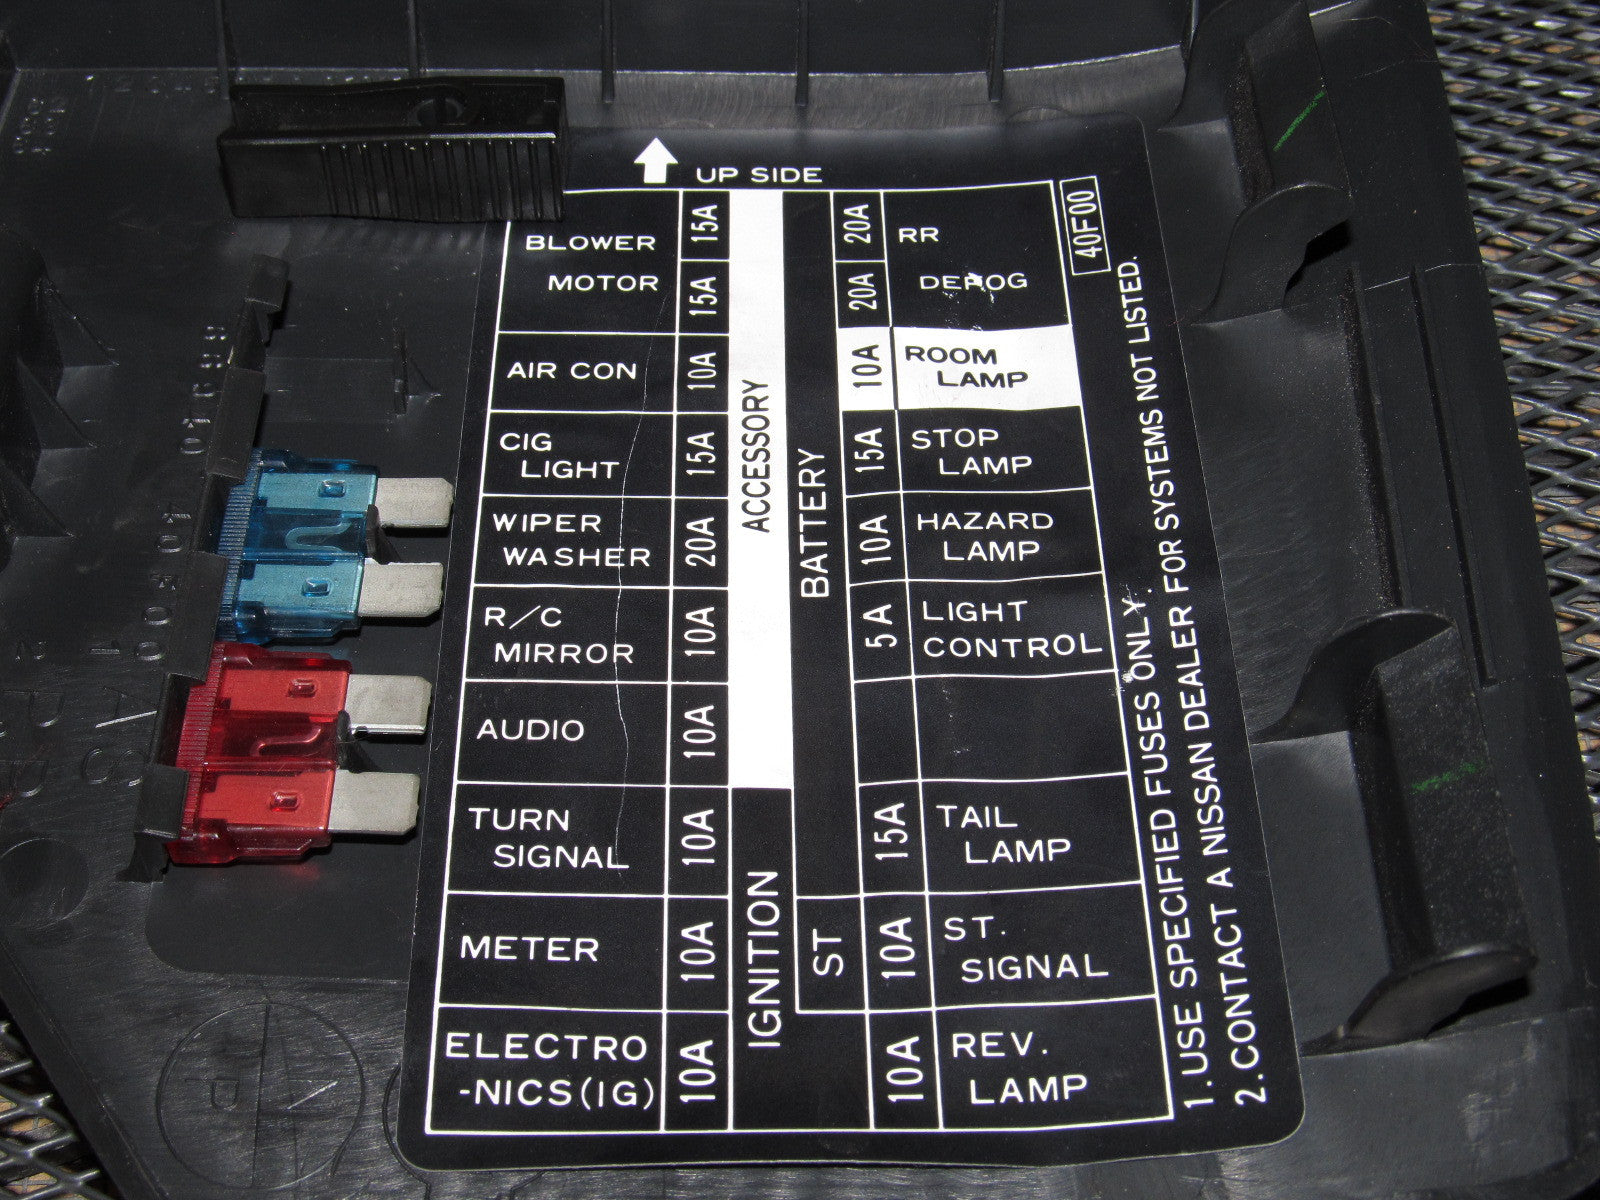 Toyota Supra Fuse Box Diagram 1998 Kick Panel 89 Schematic Wiring Diagrams U2022 2006 Corolla 1994